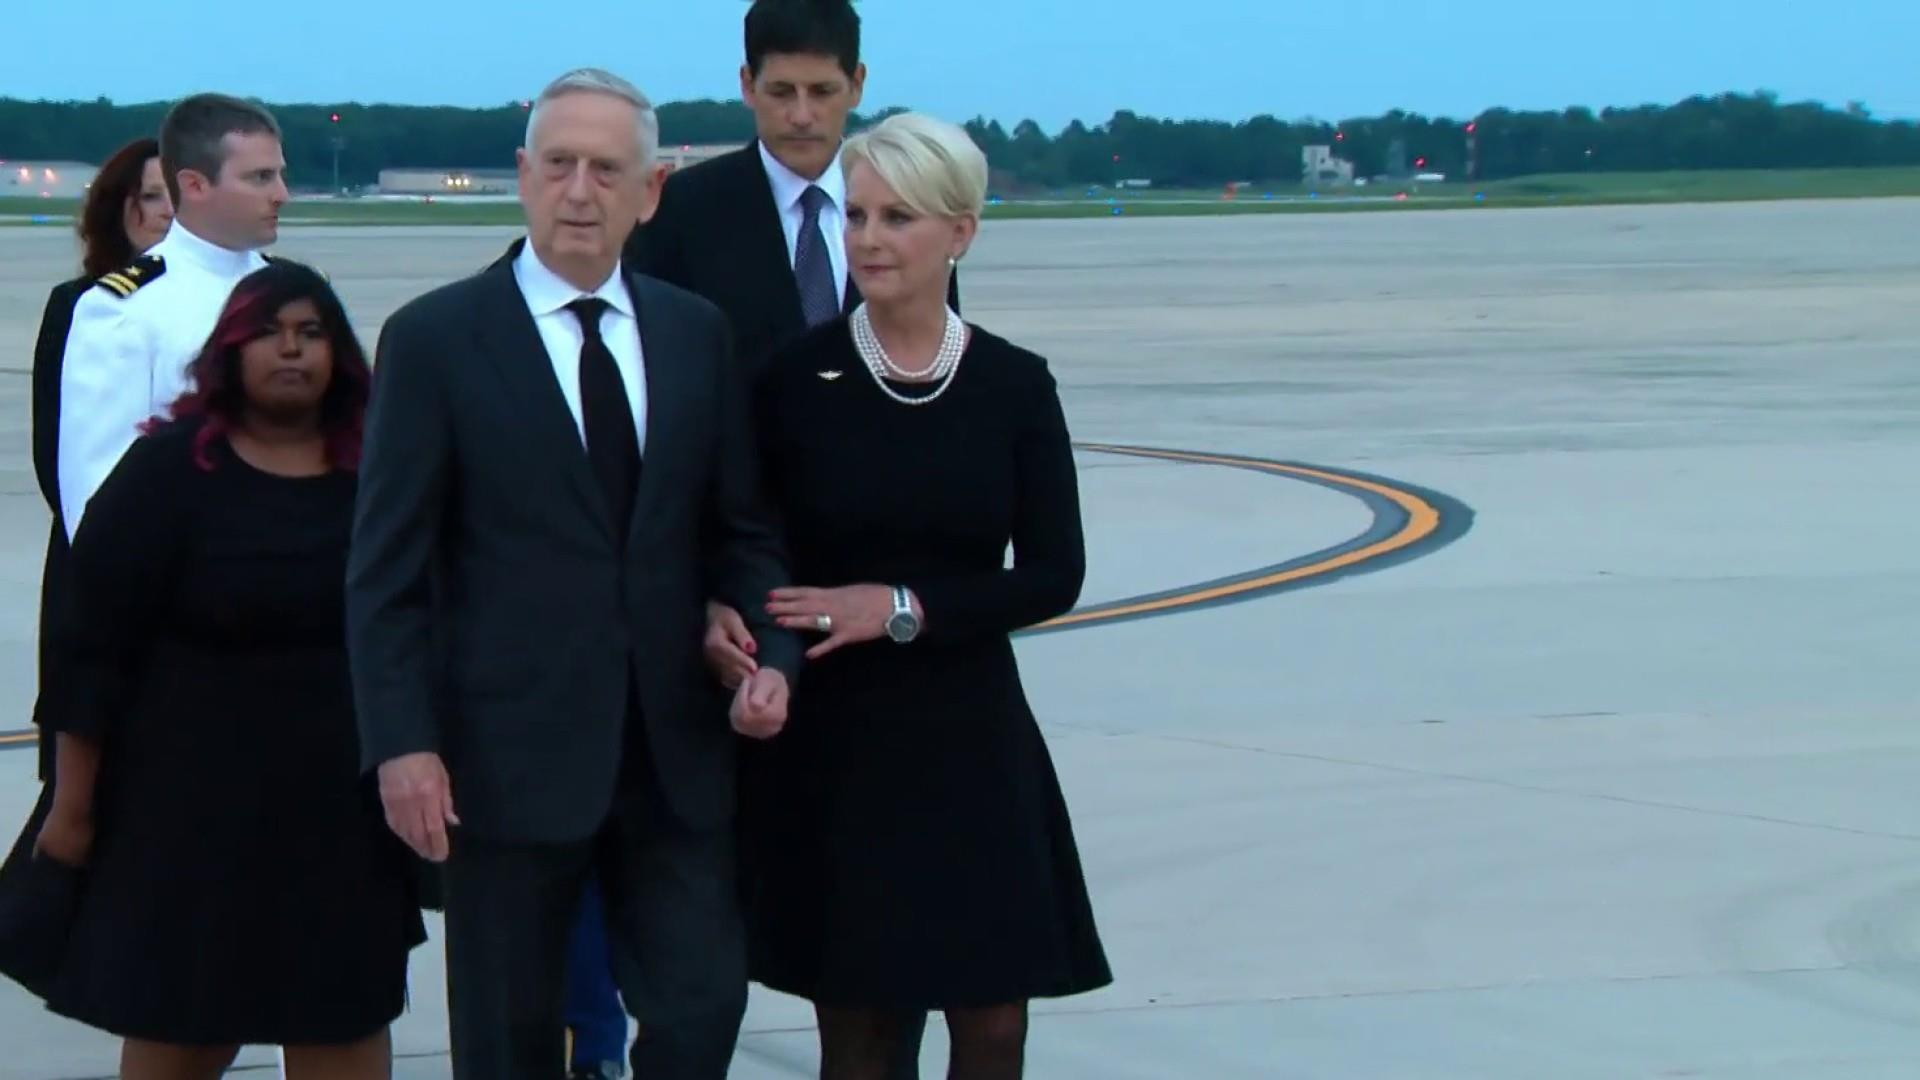 McCain casket arrives at Joint Base Andrews